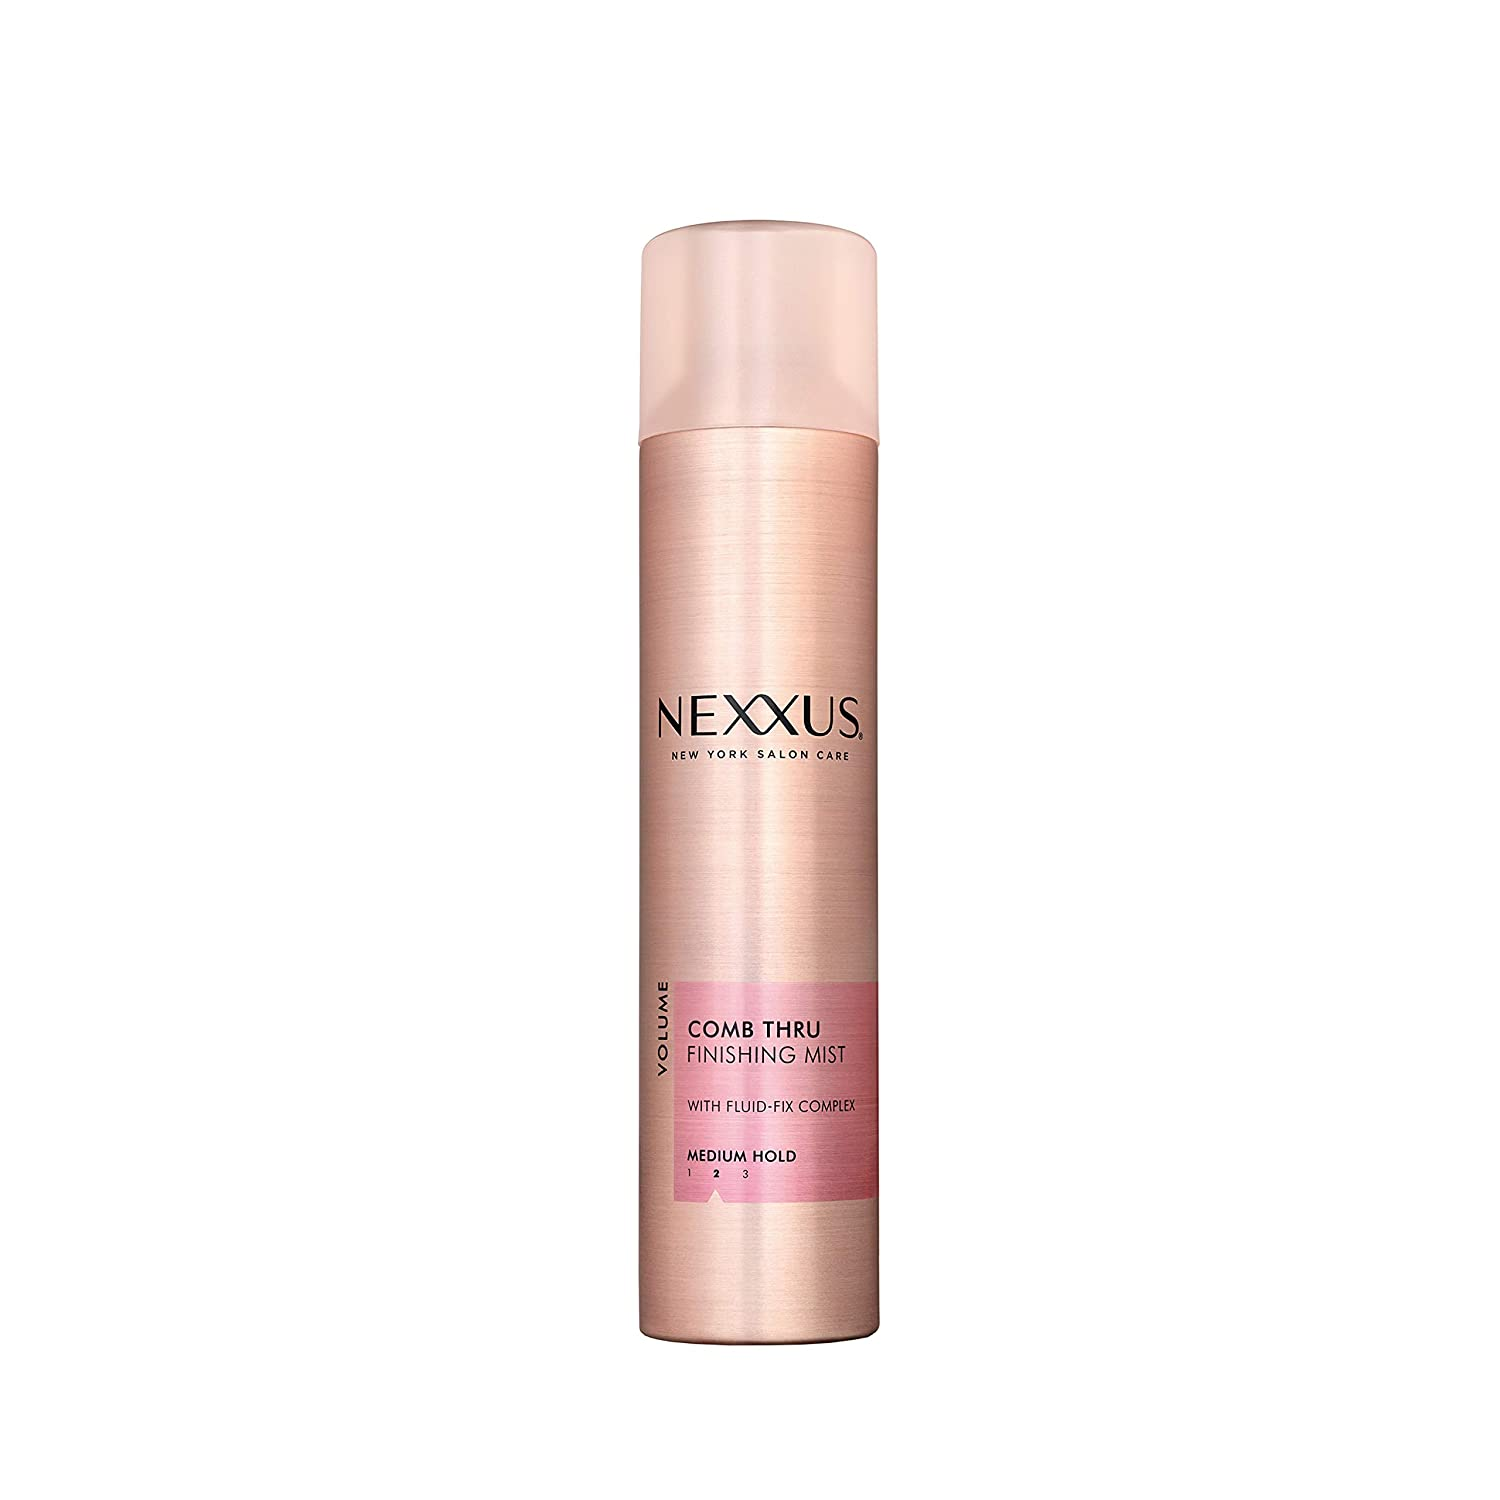 Nexxus Comb Thru Finishing Mist, for Volume, 10 oz Unilever NXCT